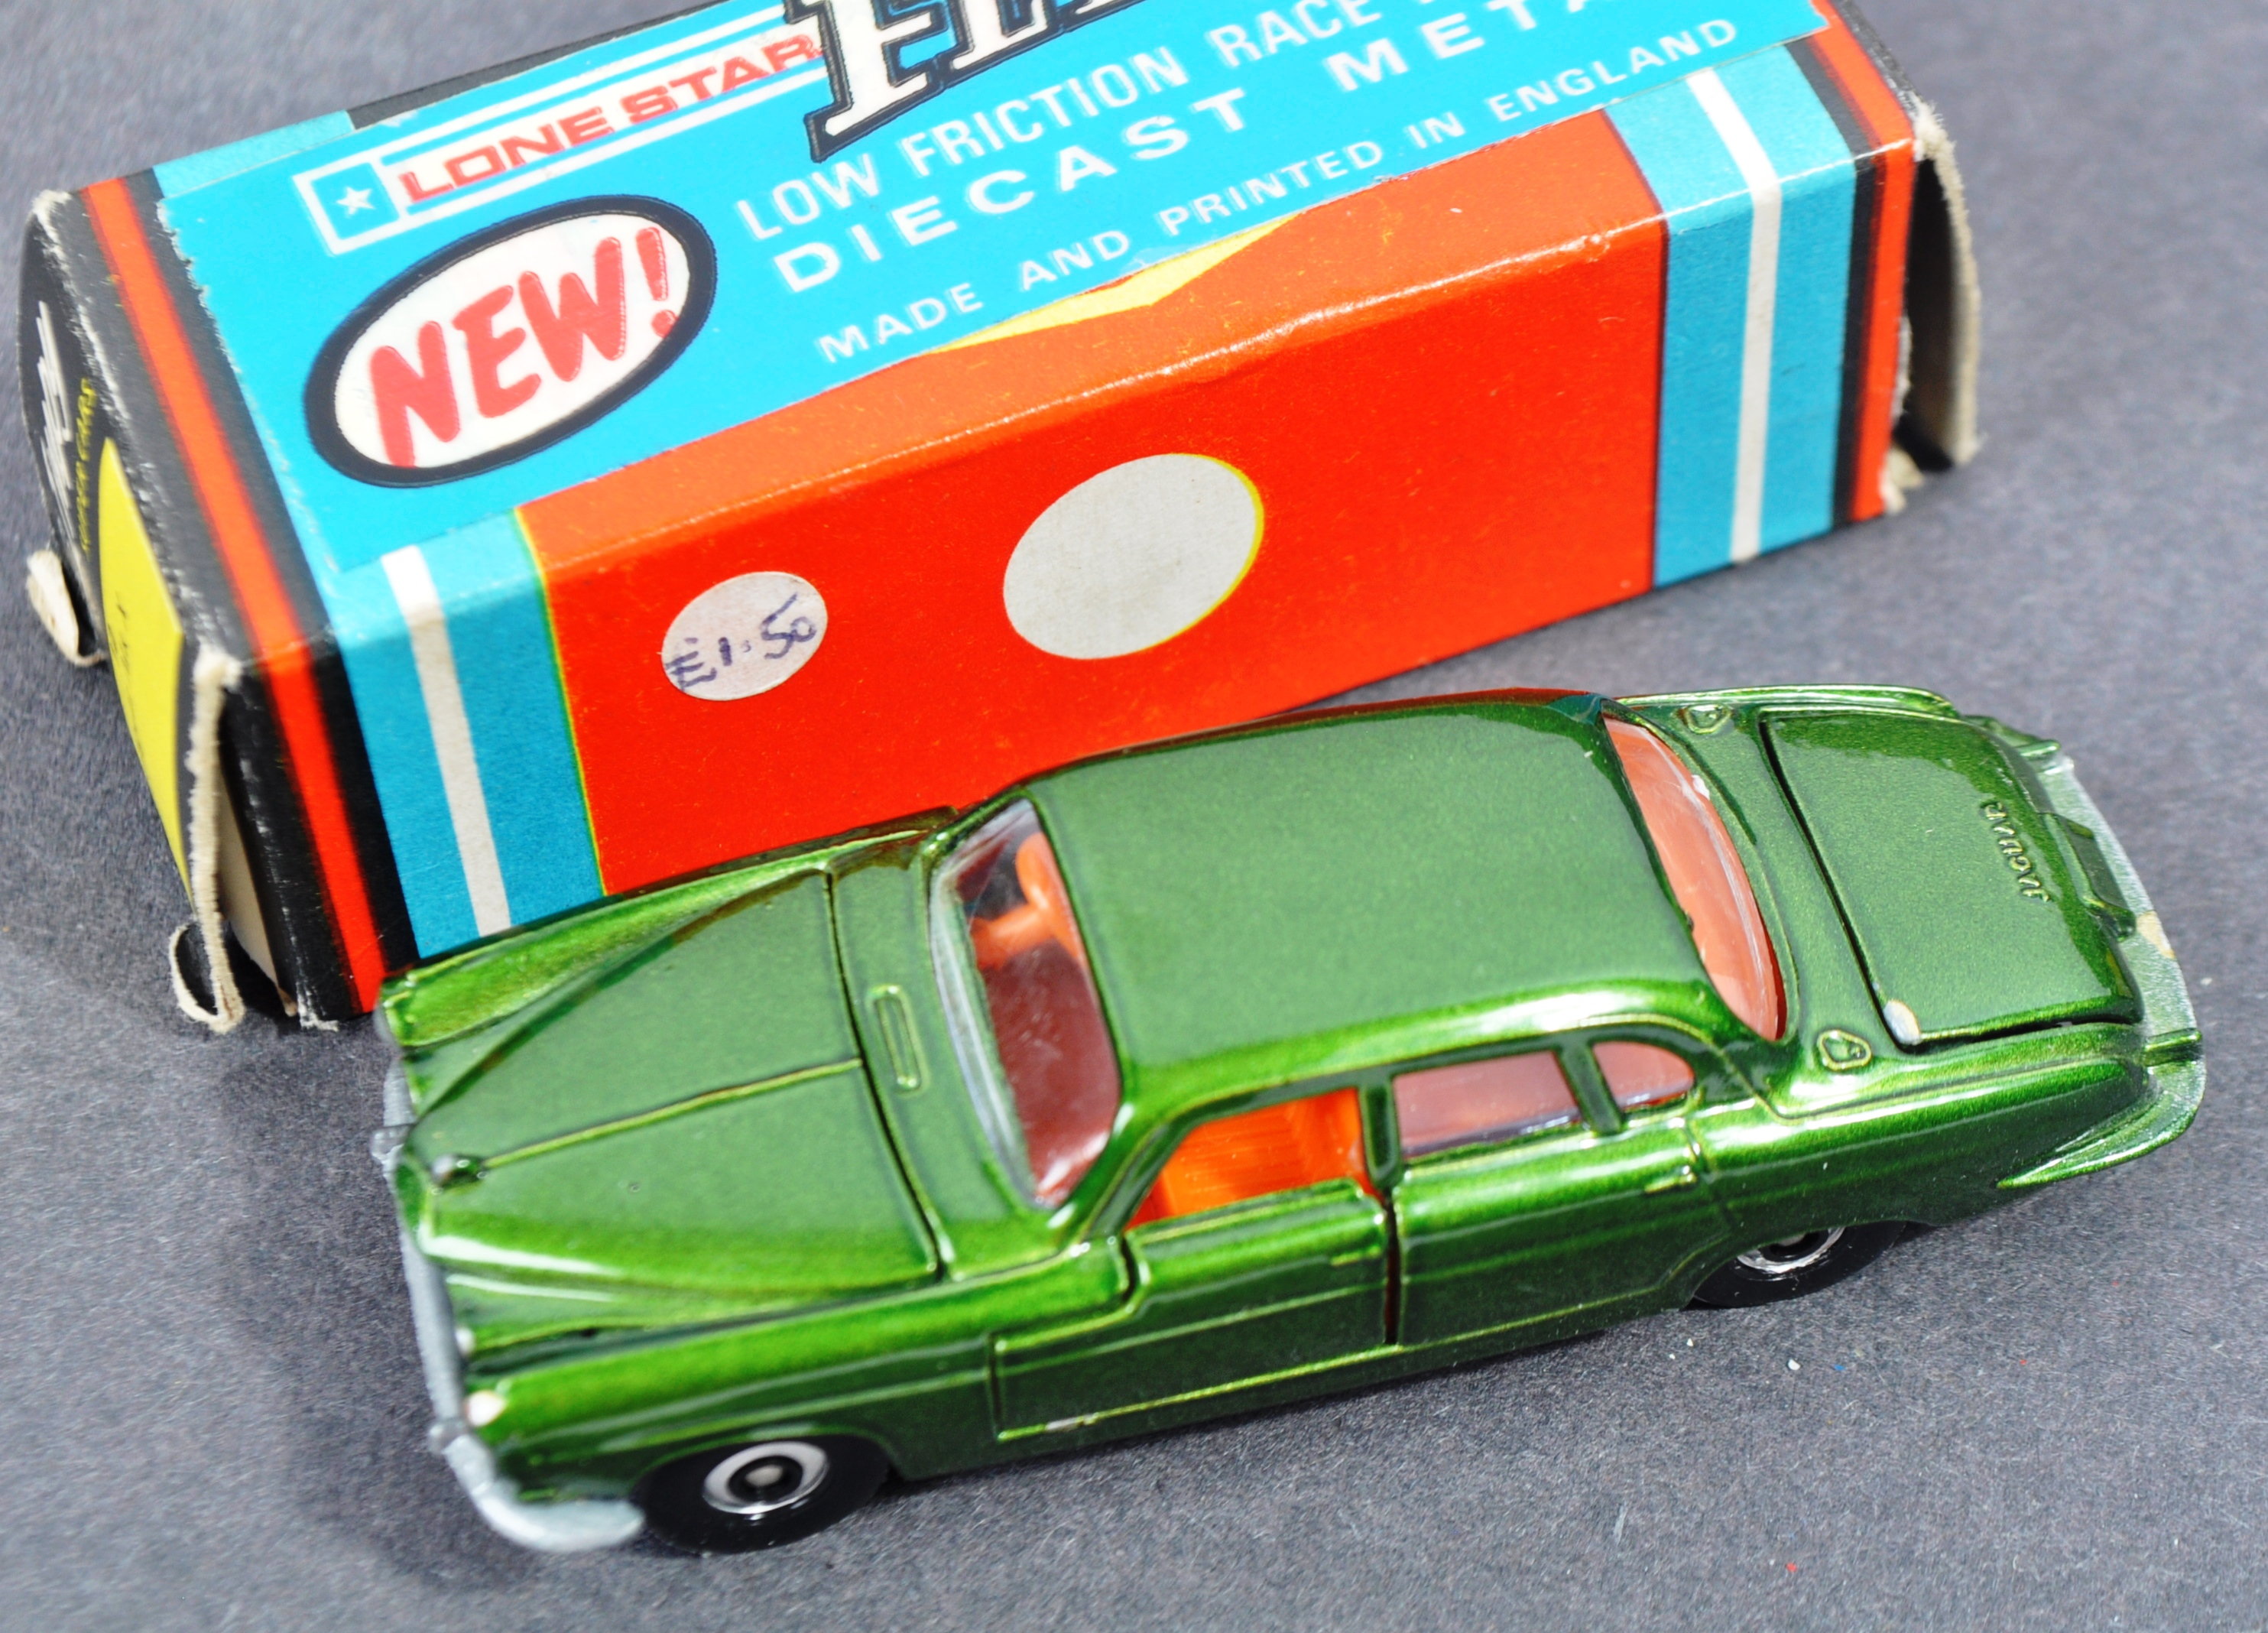 COLLECTION OF X5 ORIGINAL VINTAGE LONE STAR DIECAST MODELS - Image 5 of 6